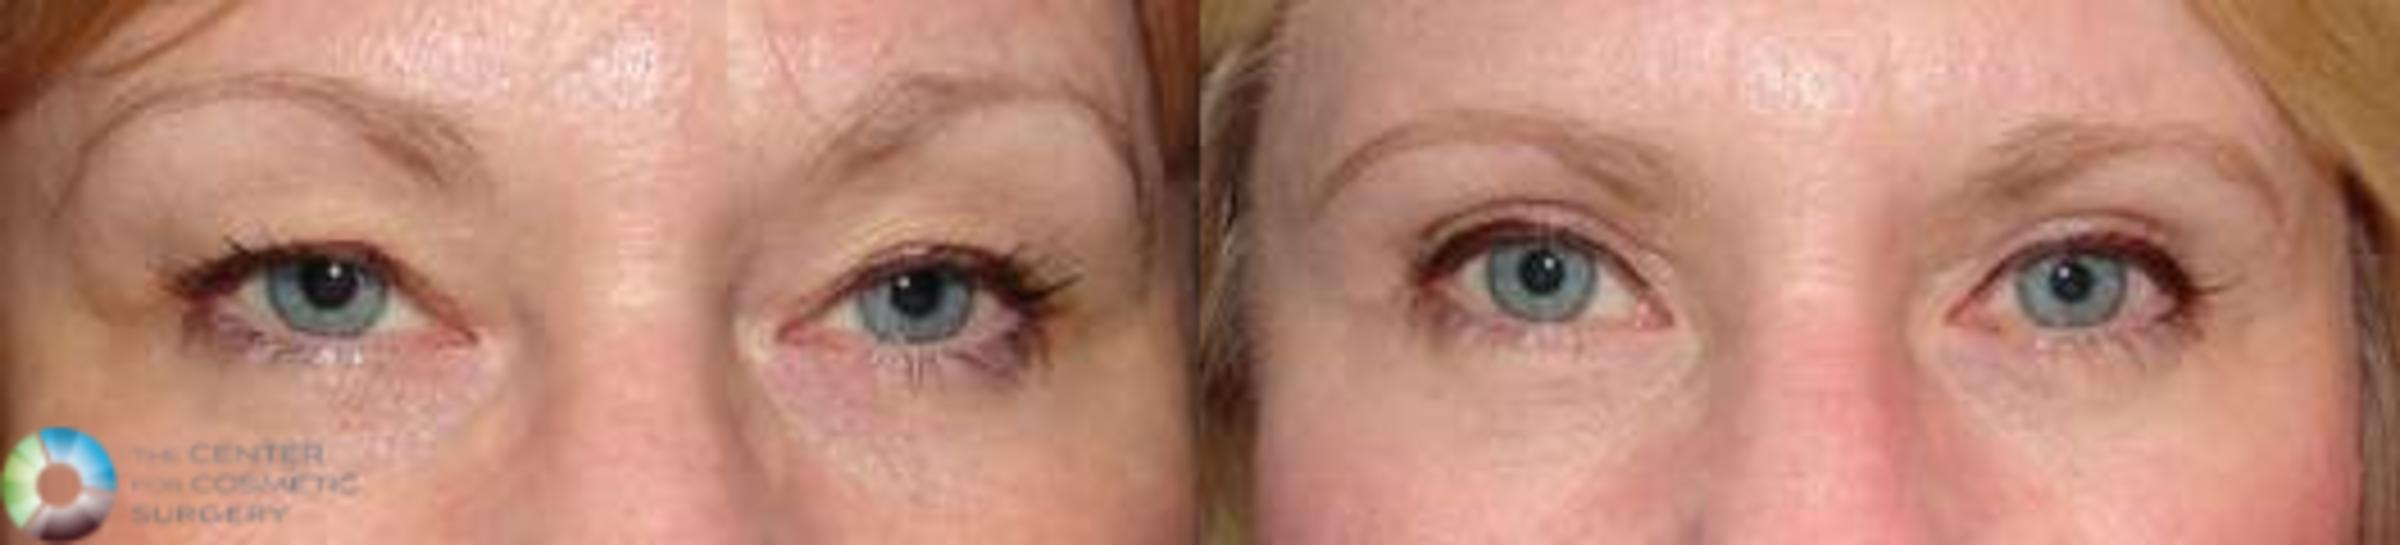 Eyelid Lift Case 577 Before & After View #1 | Golden, CO | The Center for Cosmetic Surgery